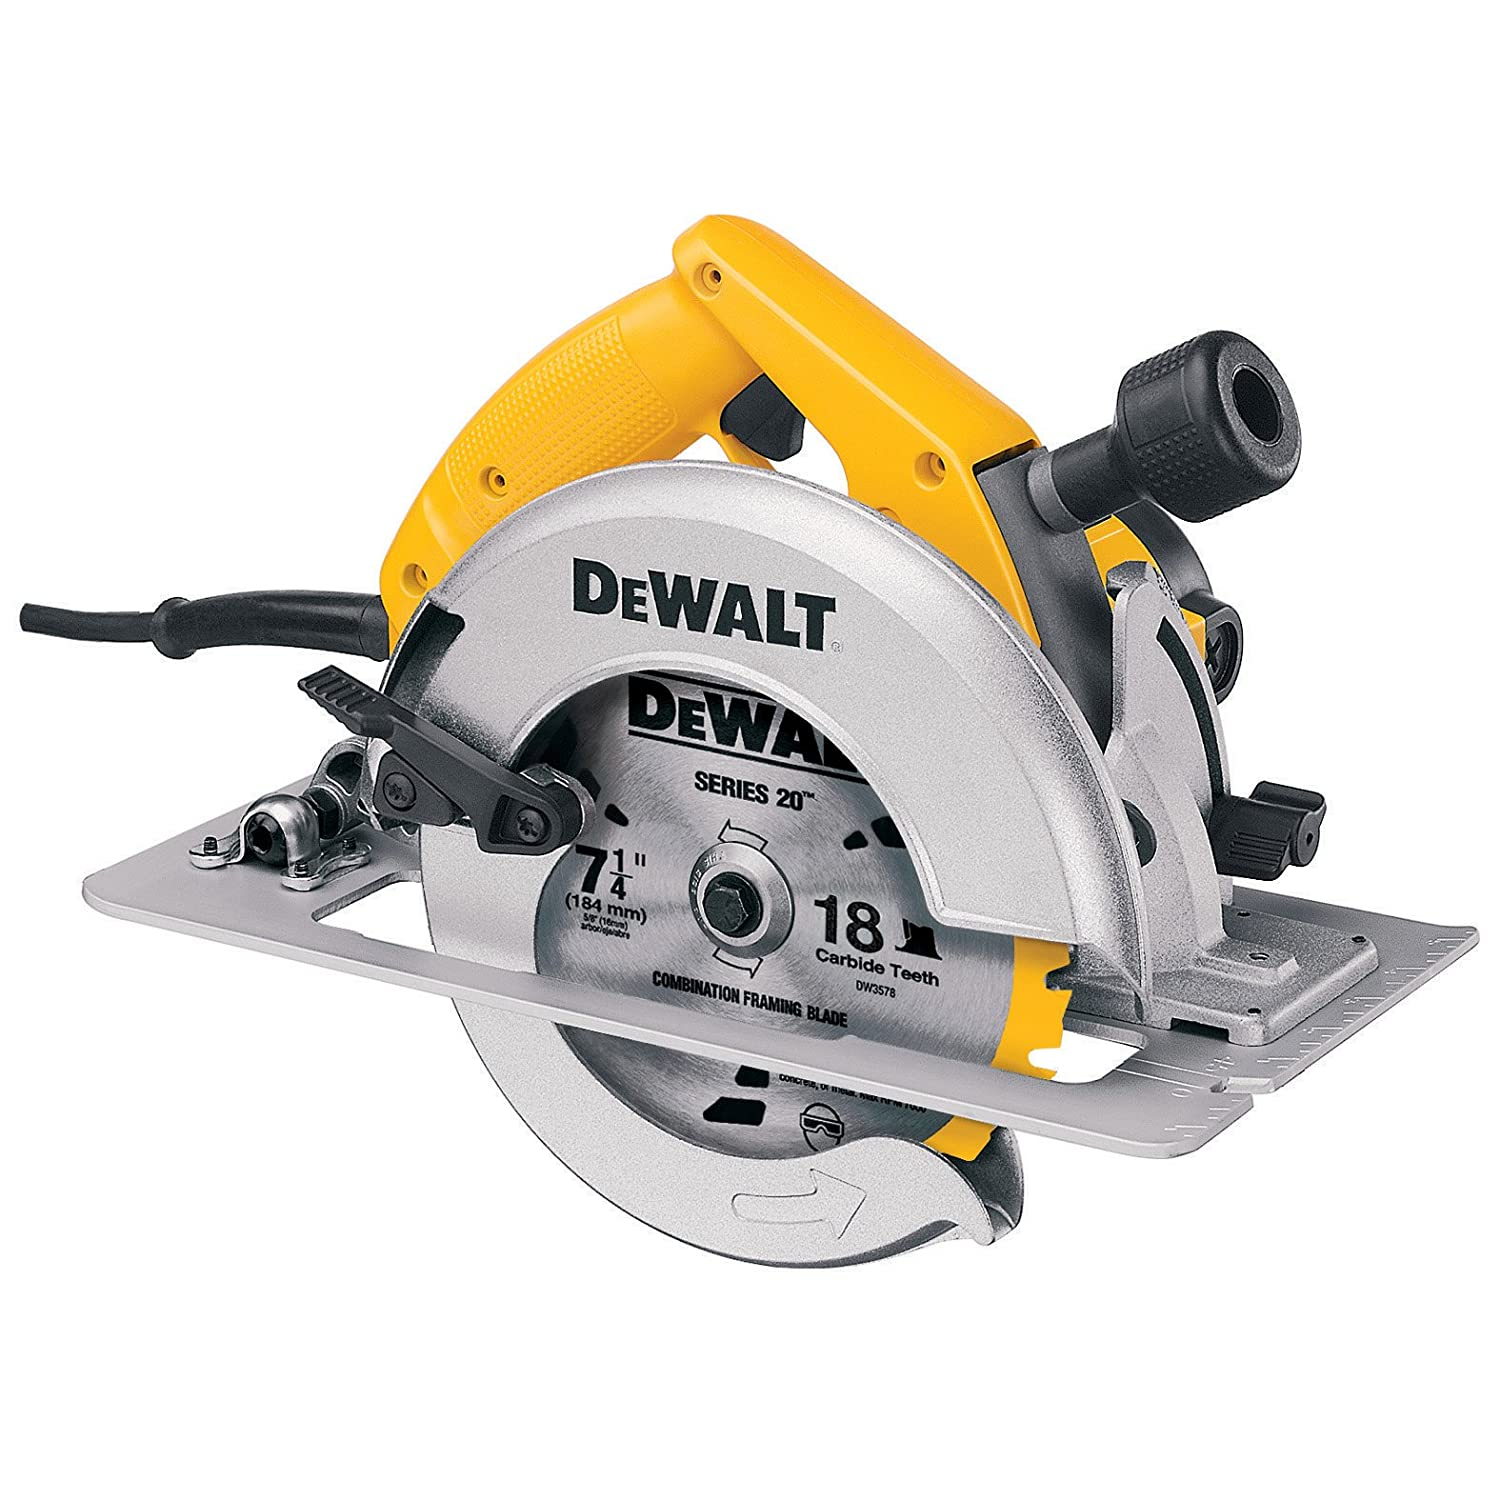 Dewalt dw364 7 14 inch circular saw with electric brake and rear dewalt dw364 7 14 inch circular saw with electric brake and rear pivot depth of cut adjustment power circular saws amazon greentooth Image collections